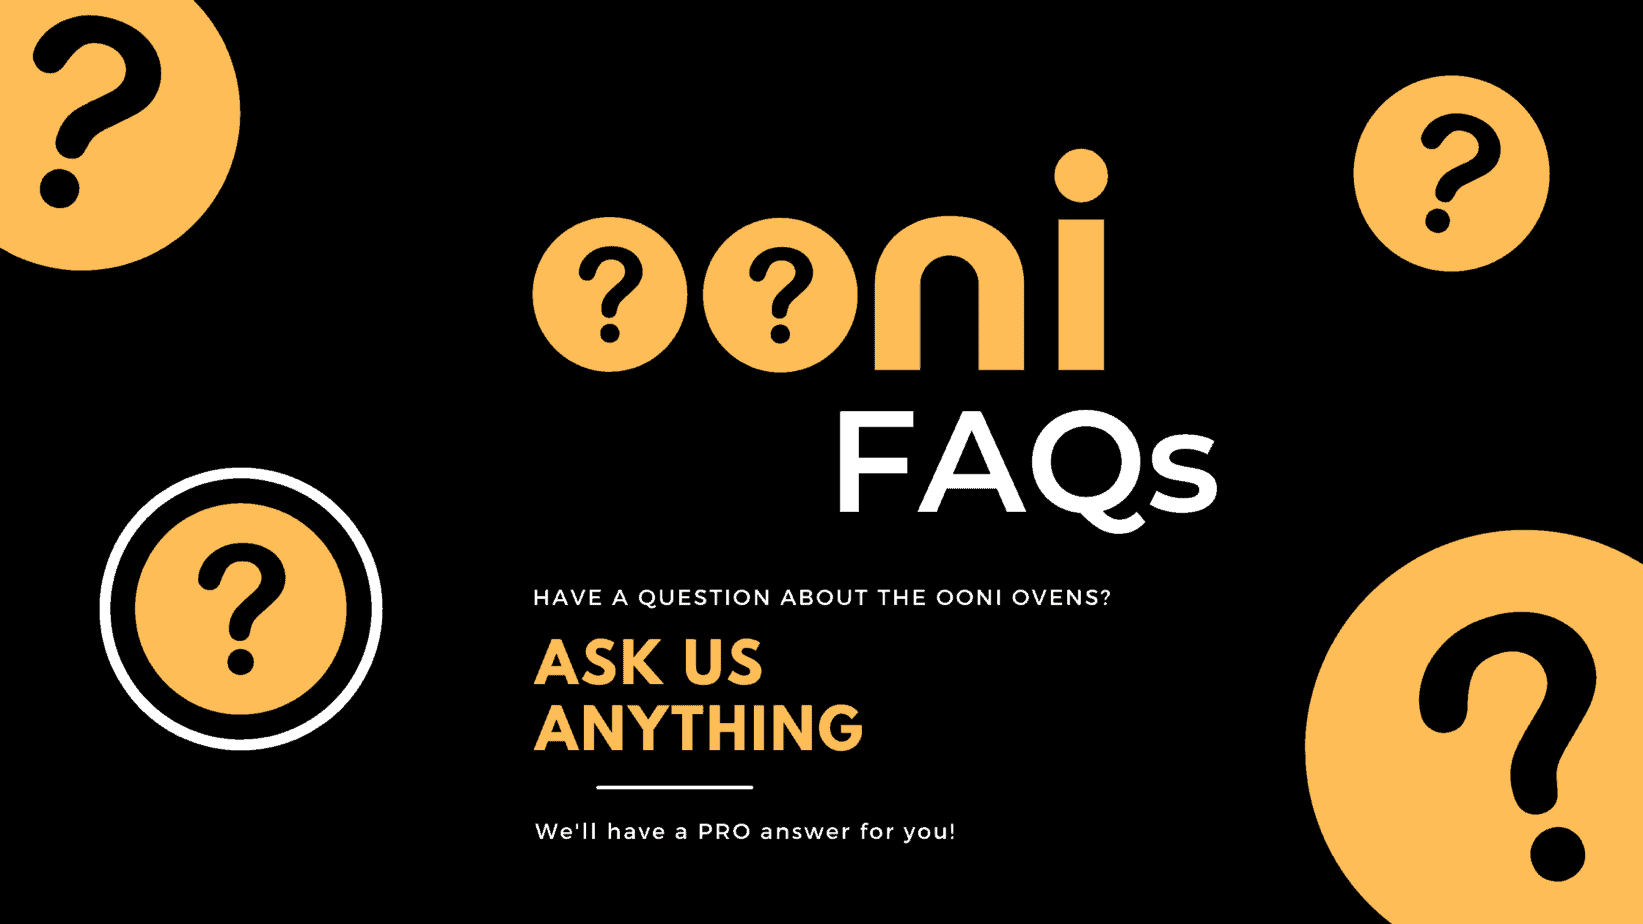 Ooni pizza oven faqs